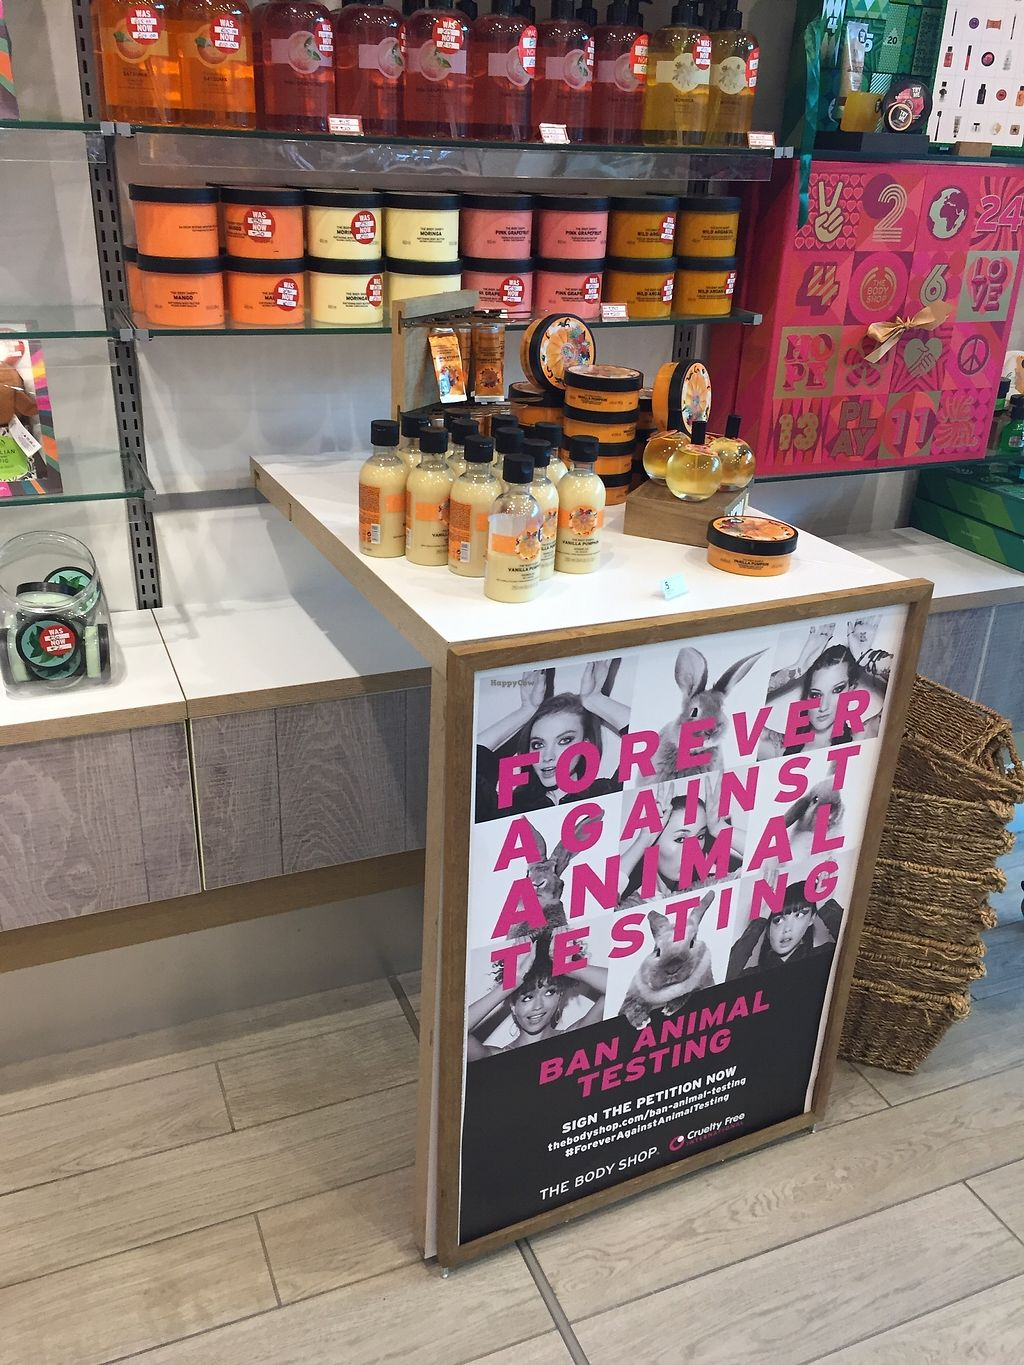 """Photo of The Body Shop  by <a href=""""/members/profile/TARAMCDONALD"""">TARAMCDONALD</a> <br/>Against animal testing campaign <br/> October 24, 2017  - <a href='/contact/abuse/image/97175/318483'>Report</a>"""